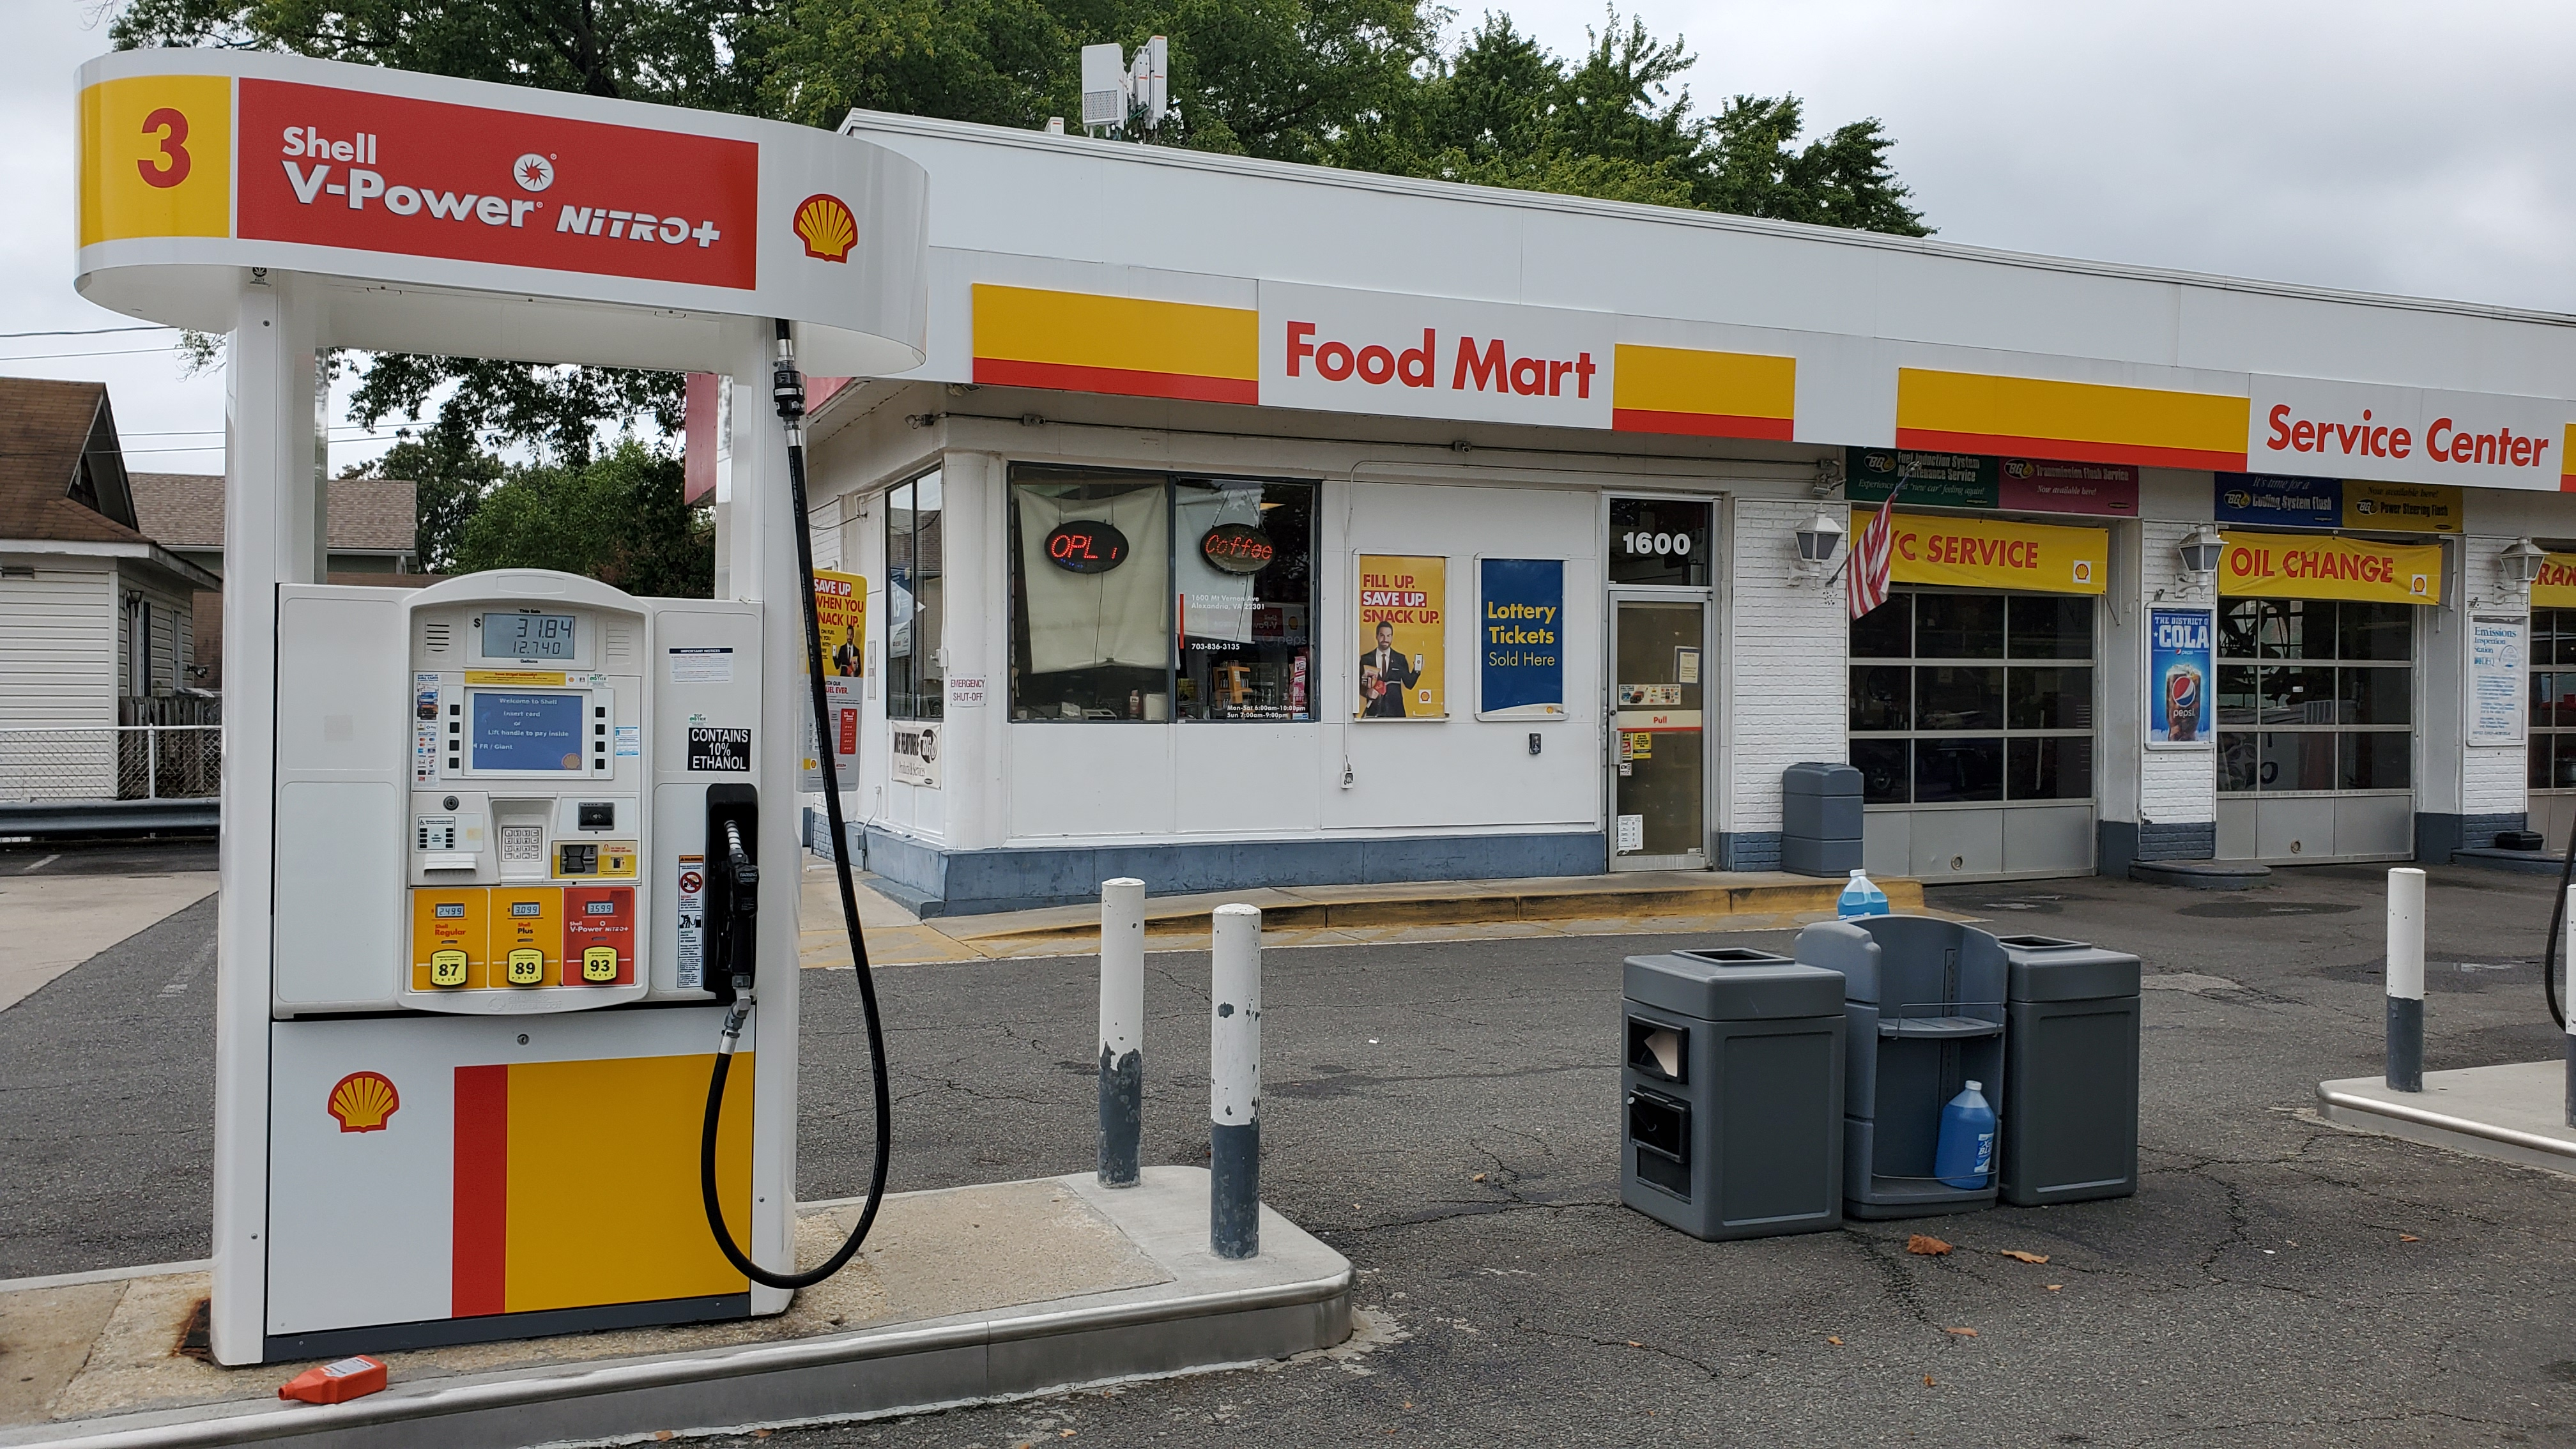 Bitcoin ATM inside Shell Gas